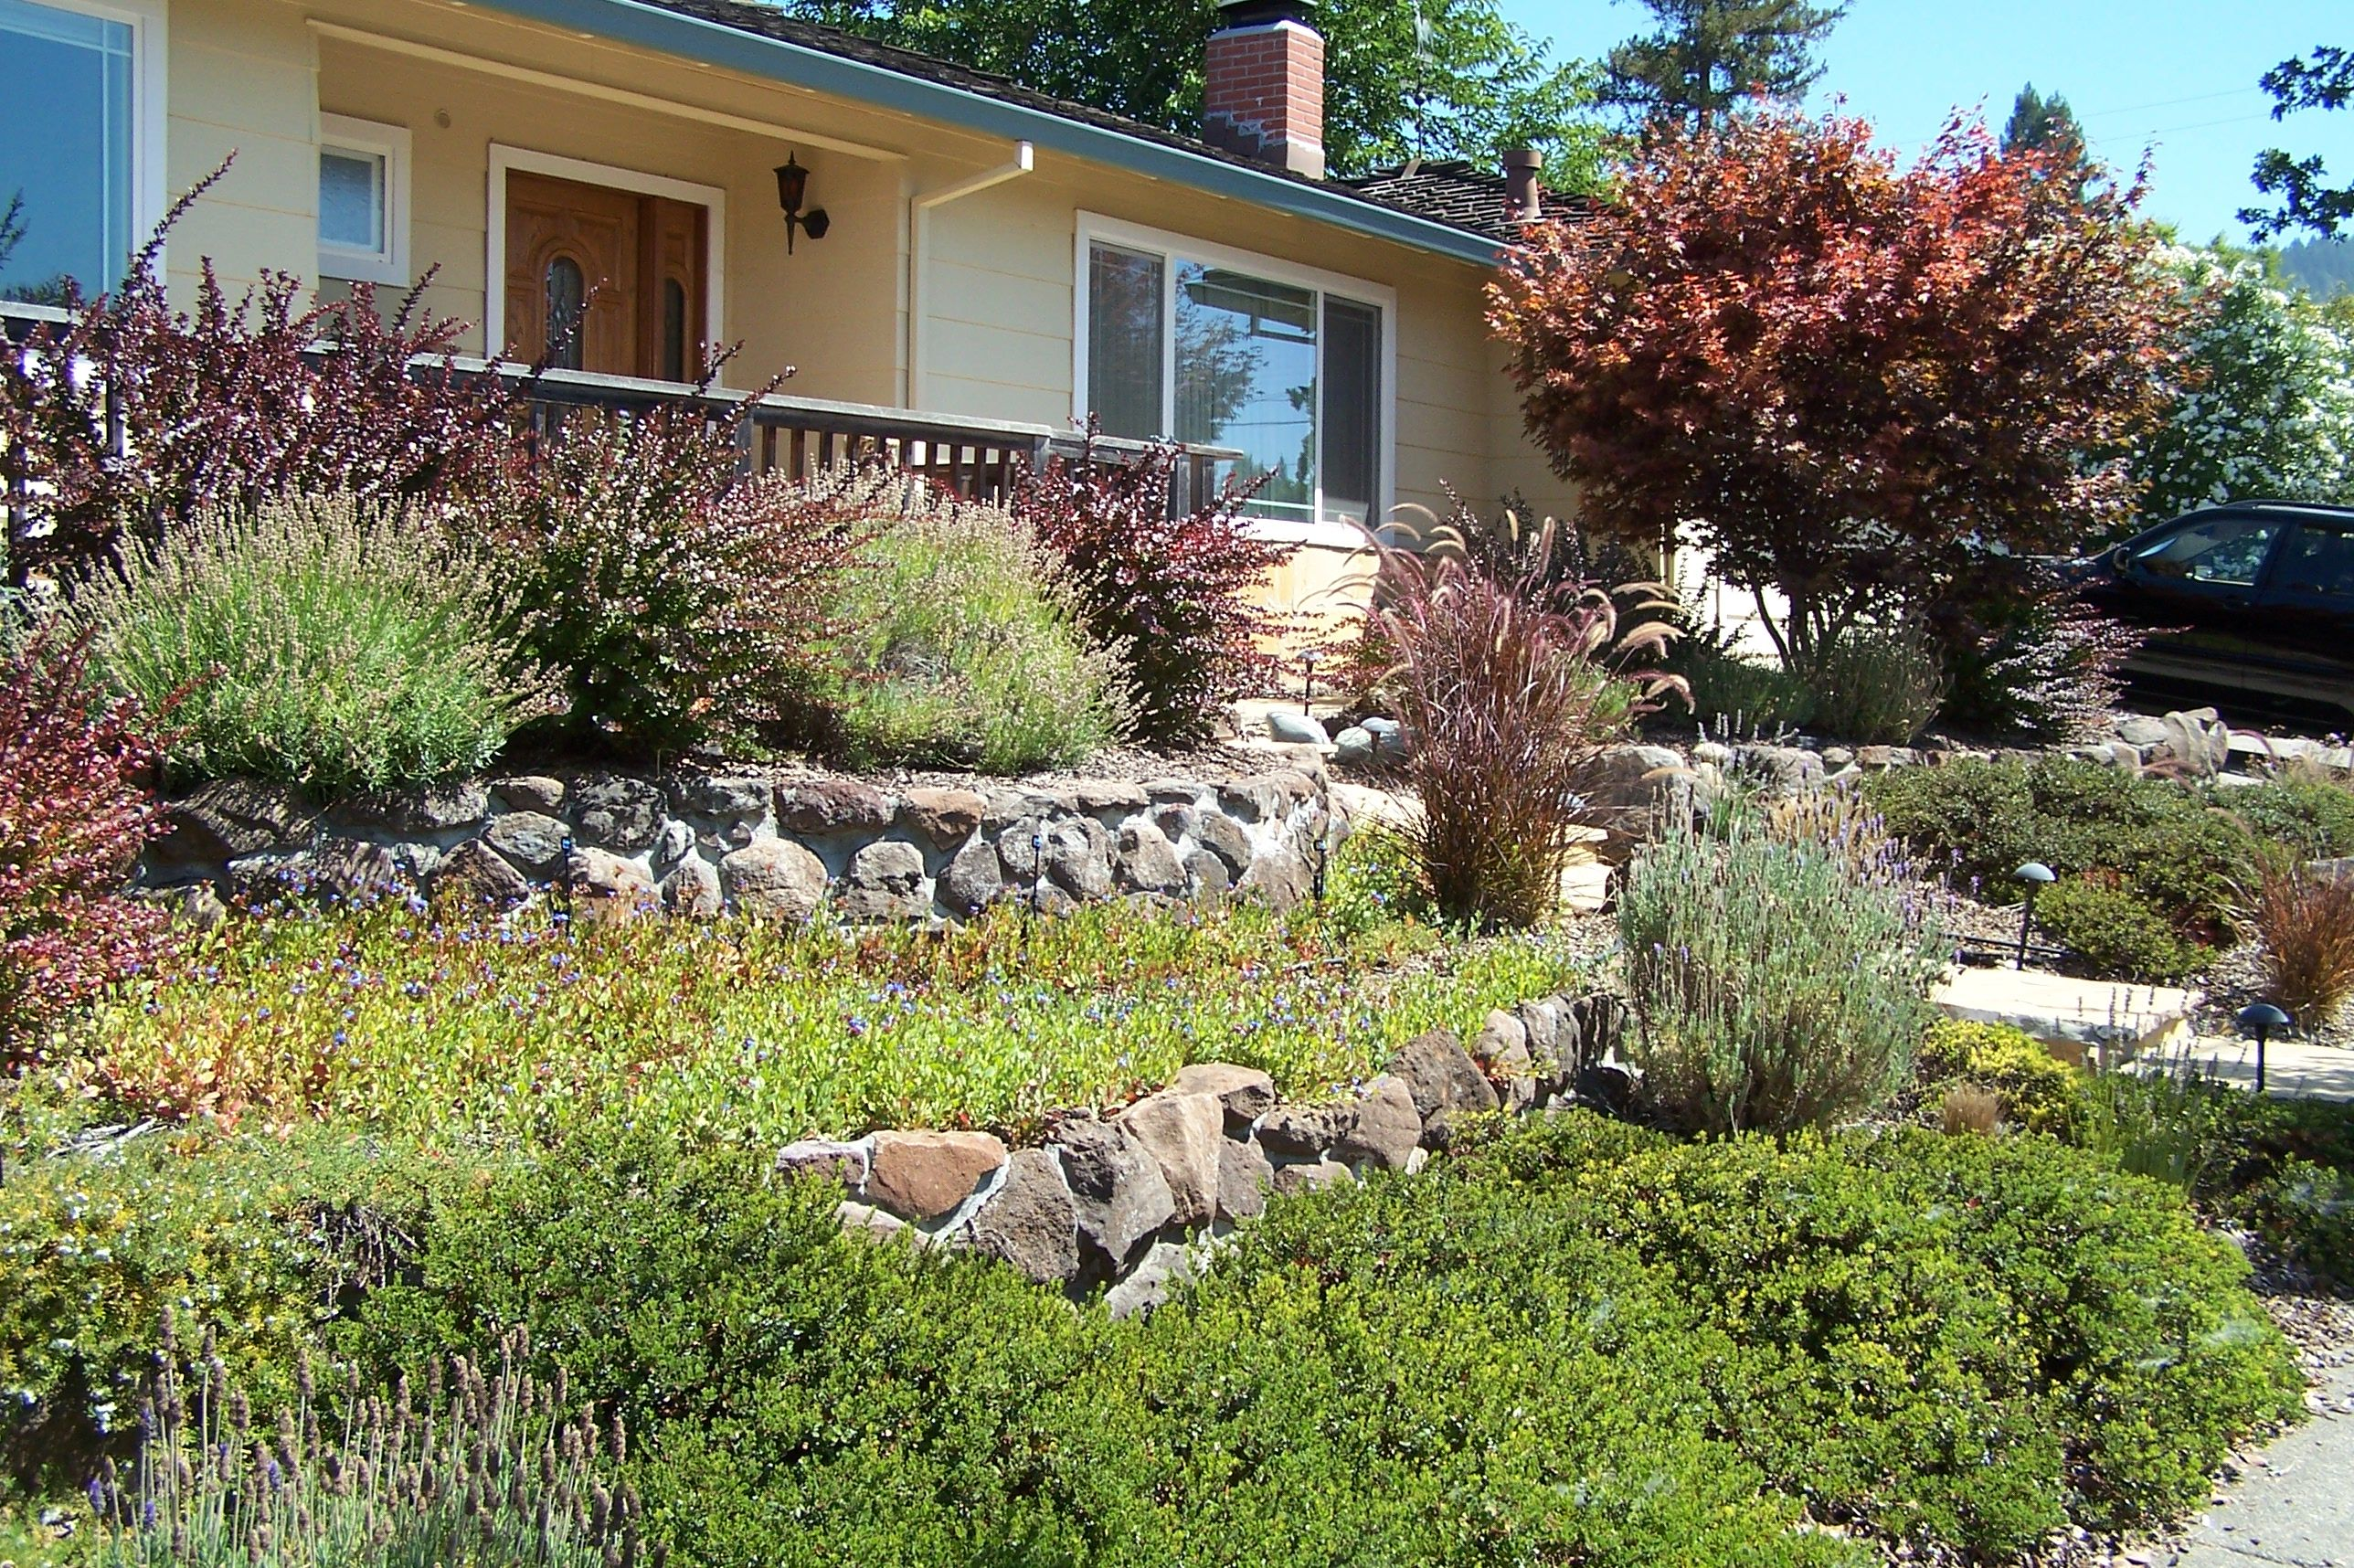 No lawn front yard garden inspiration pinterest for Front garden inspiration